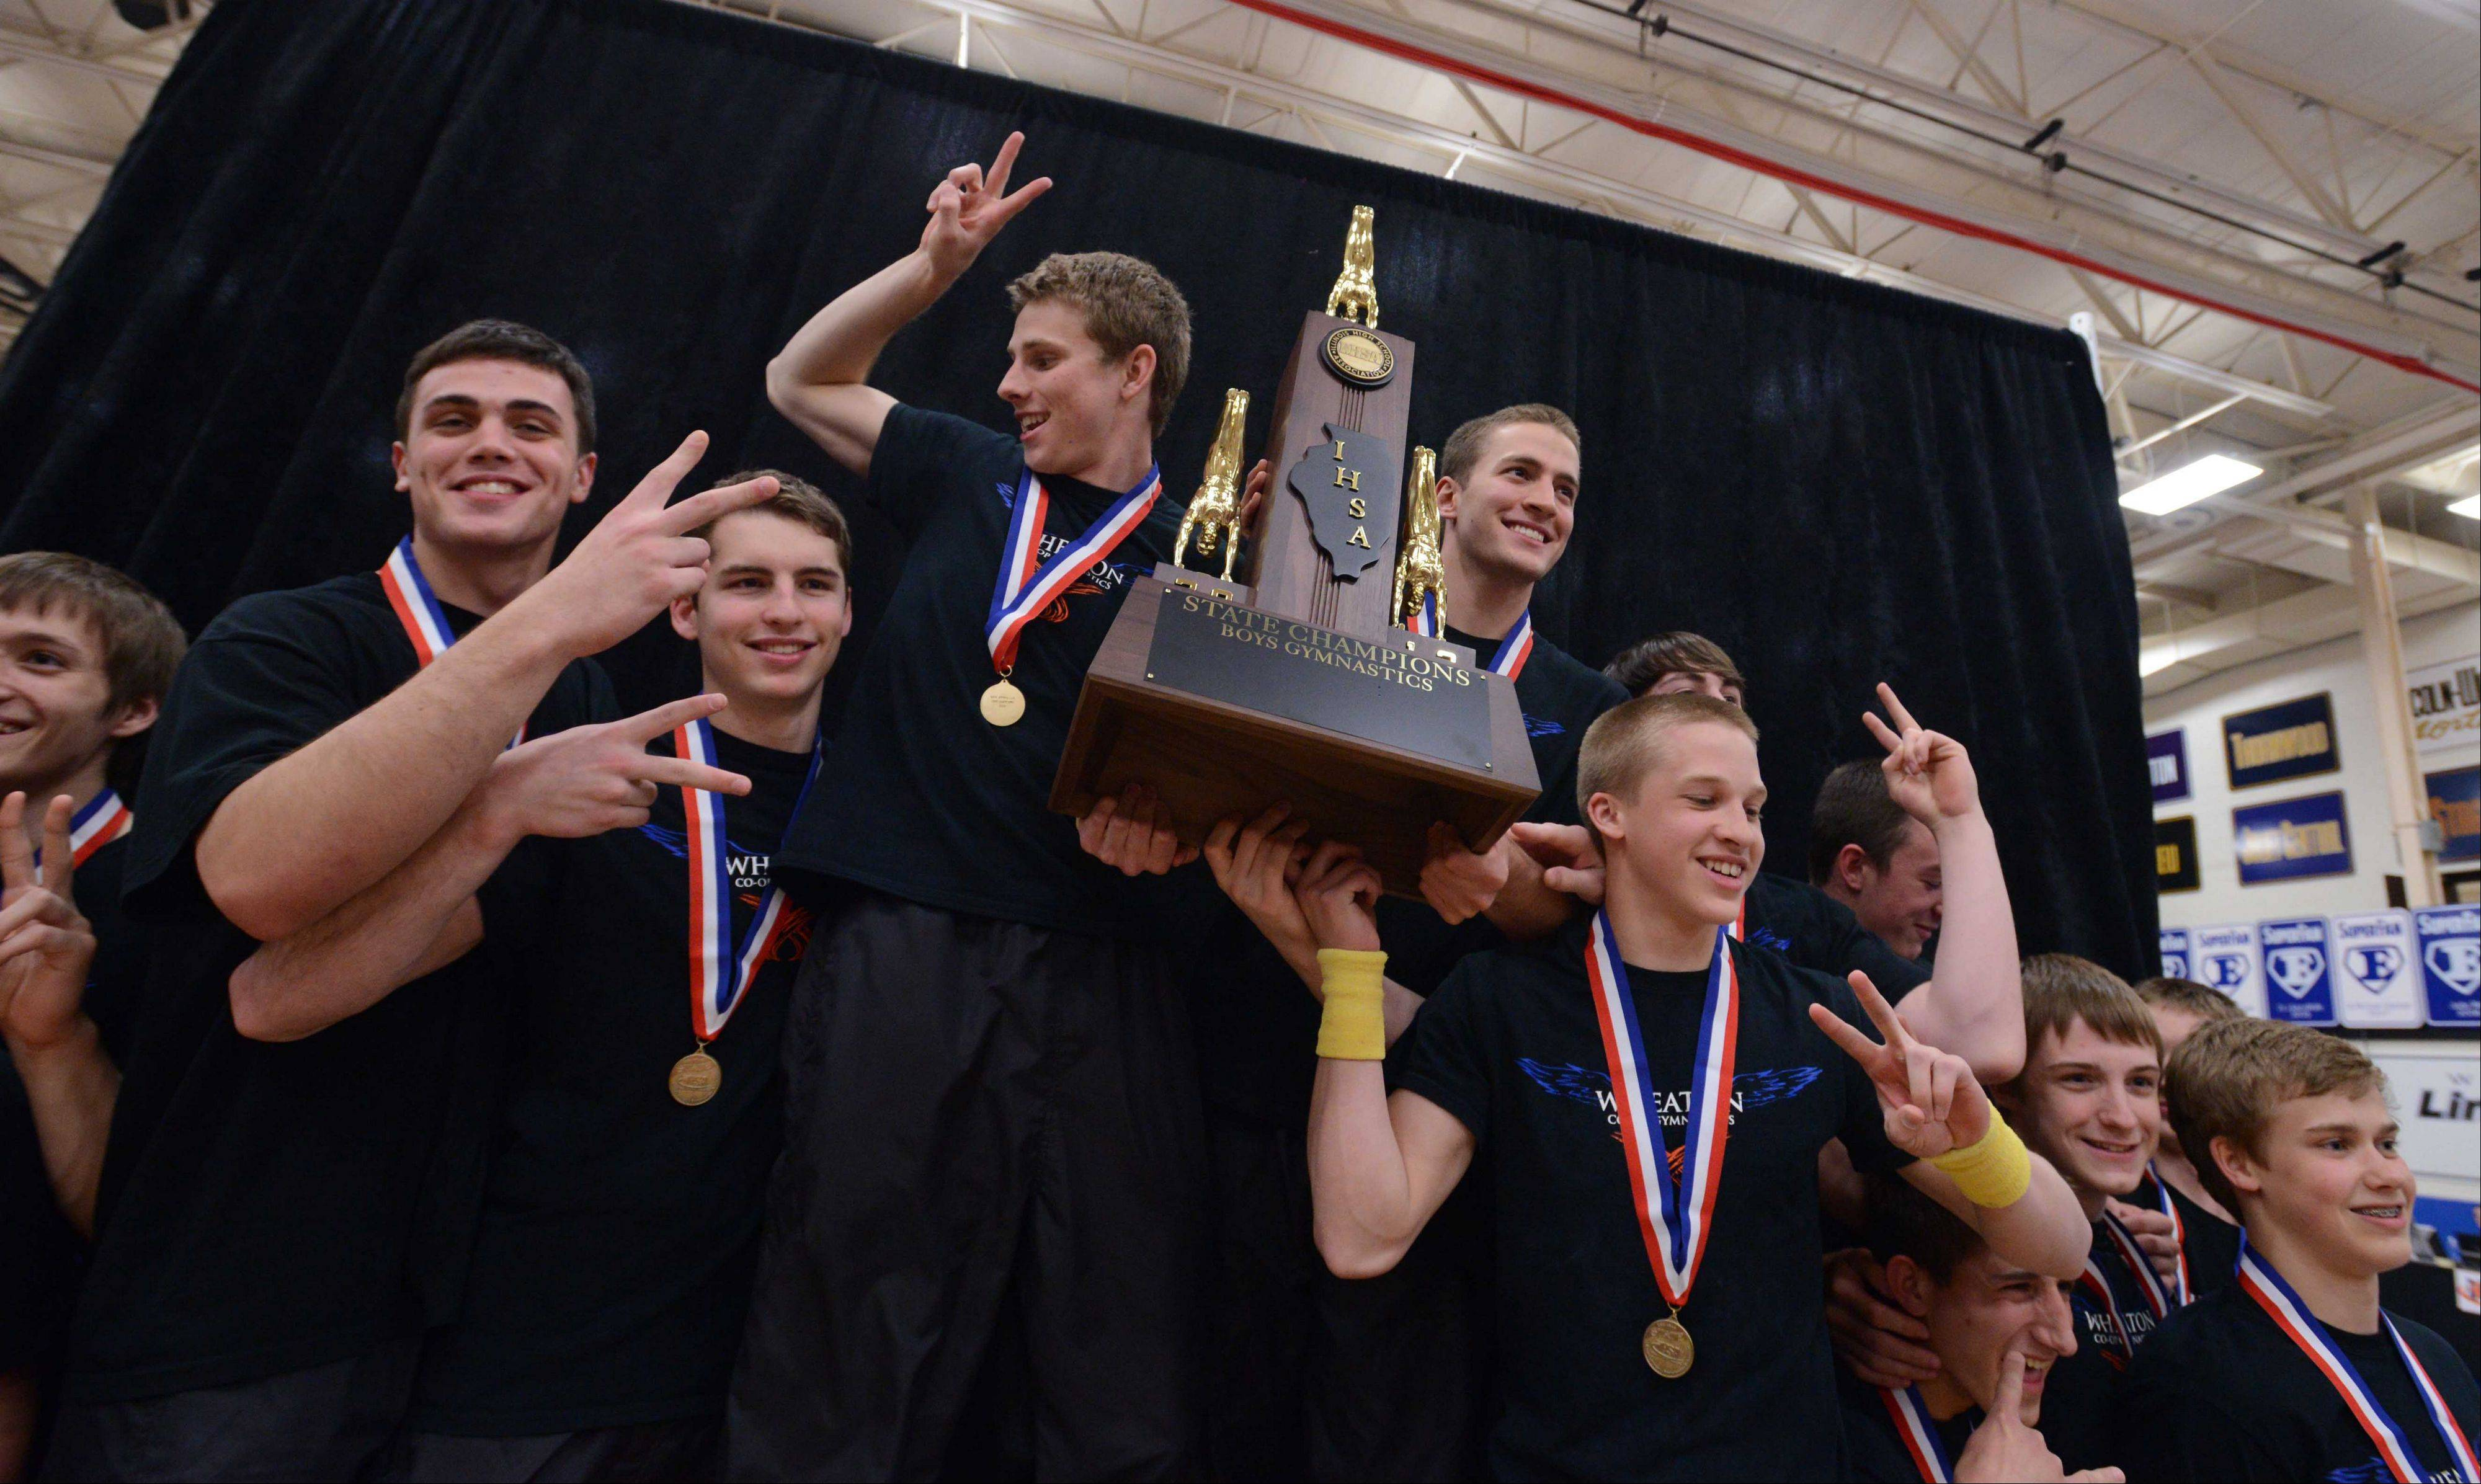 Wheaton co-op celebrates its repeat team championship in the boys gymnastics state finals Friday at Lincoln-Way East.